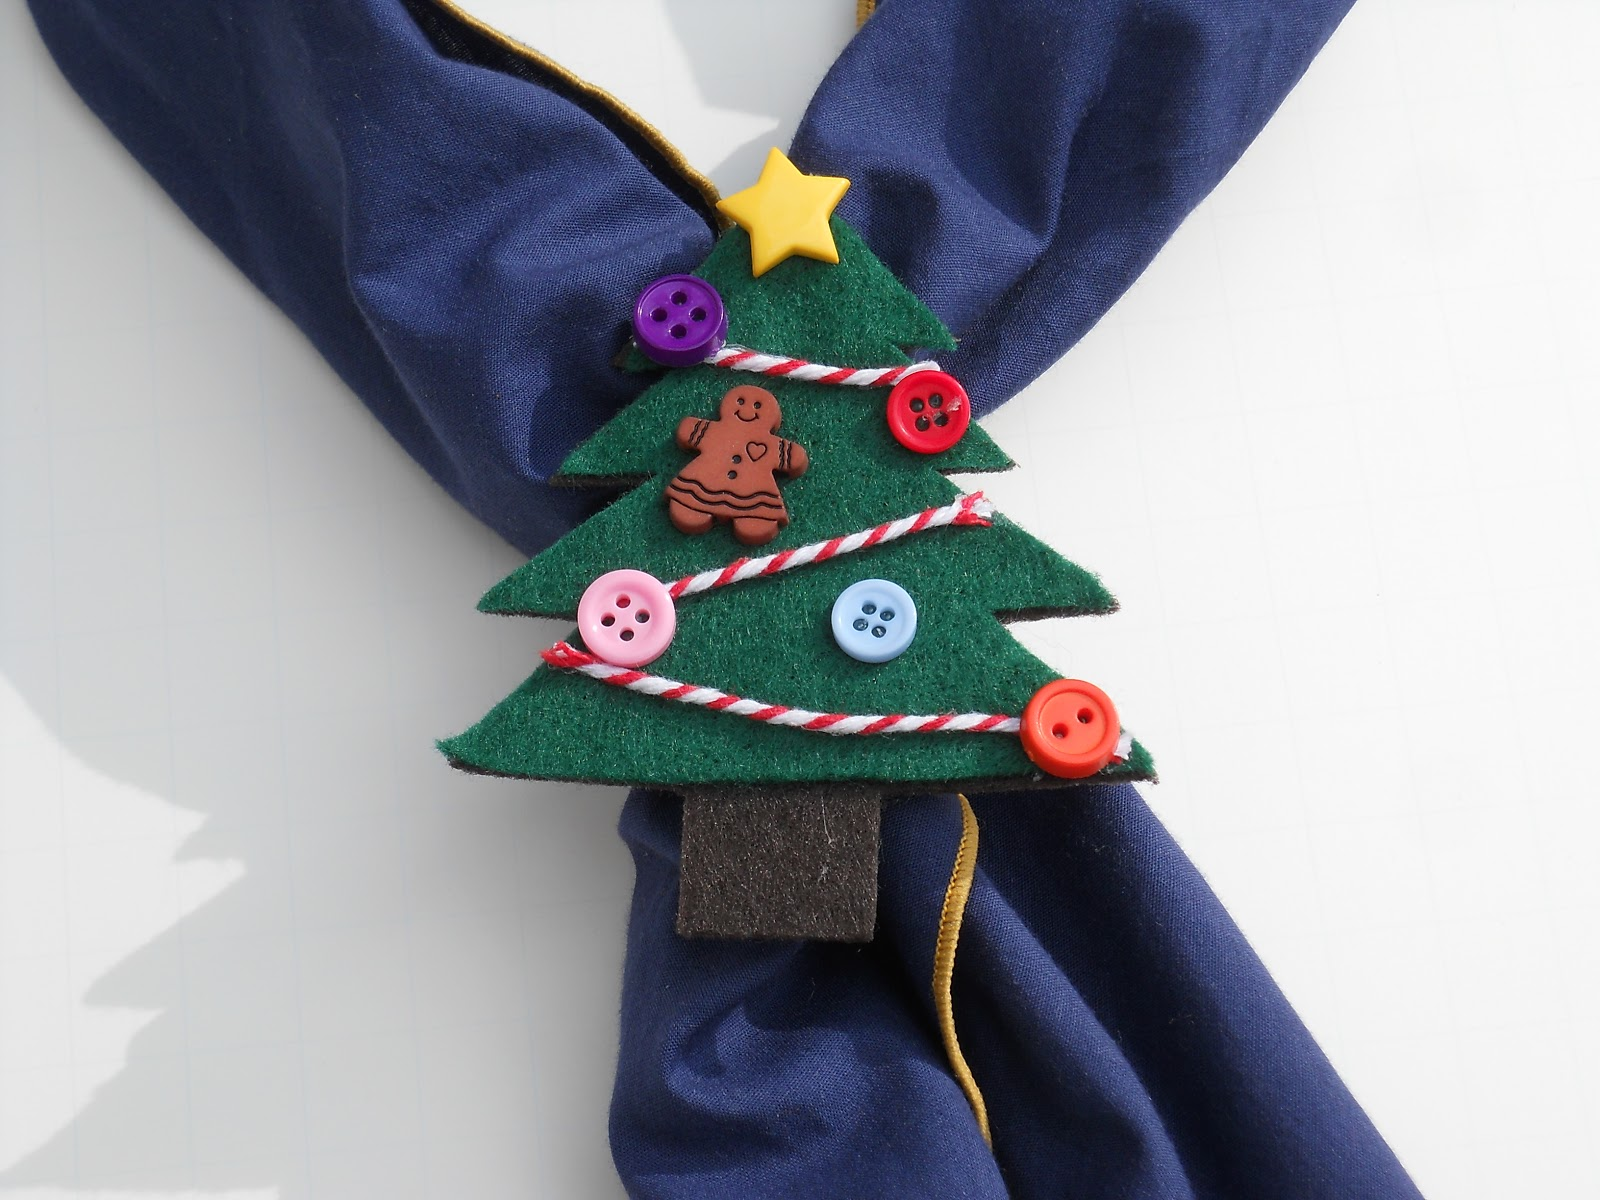 Boy Scouts Crafts For Christmas